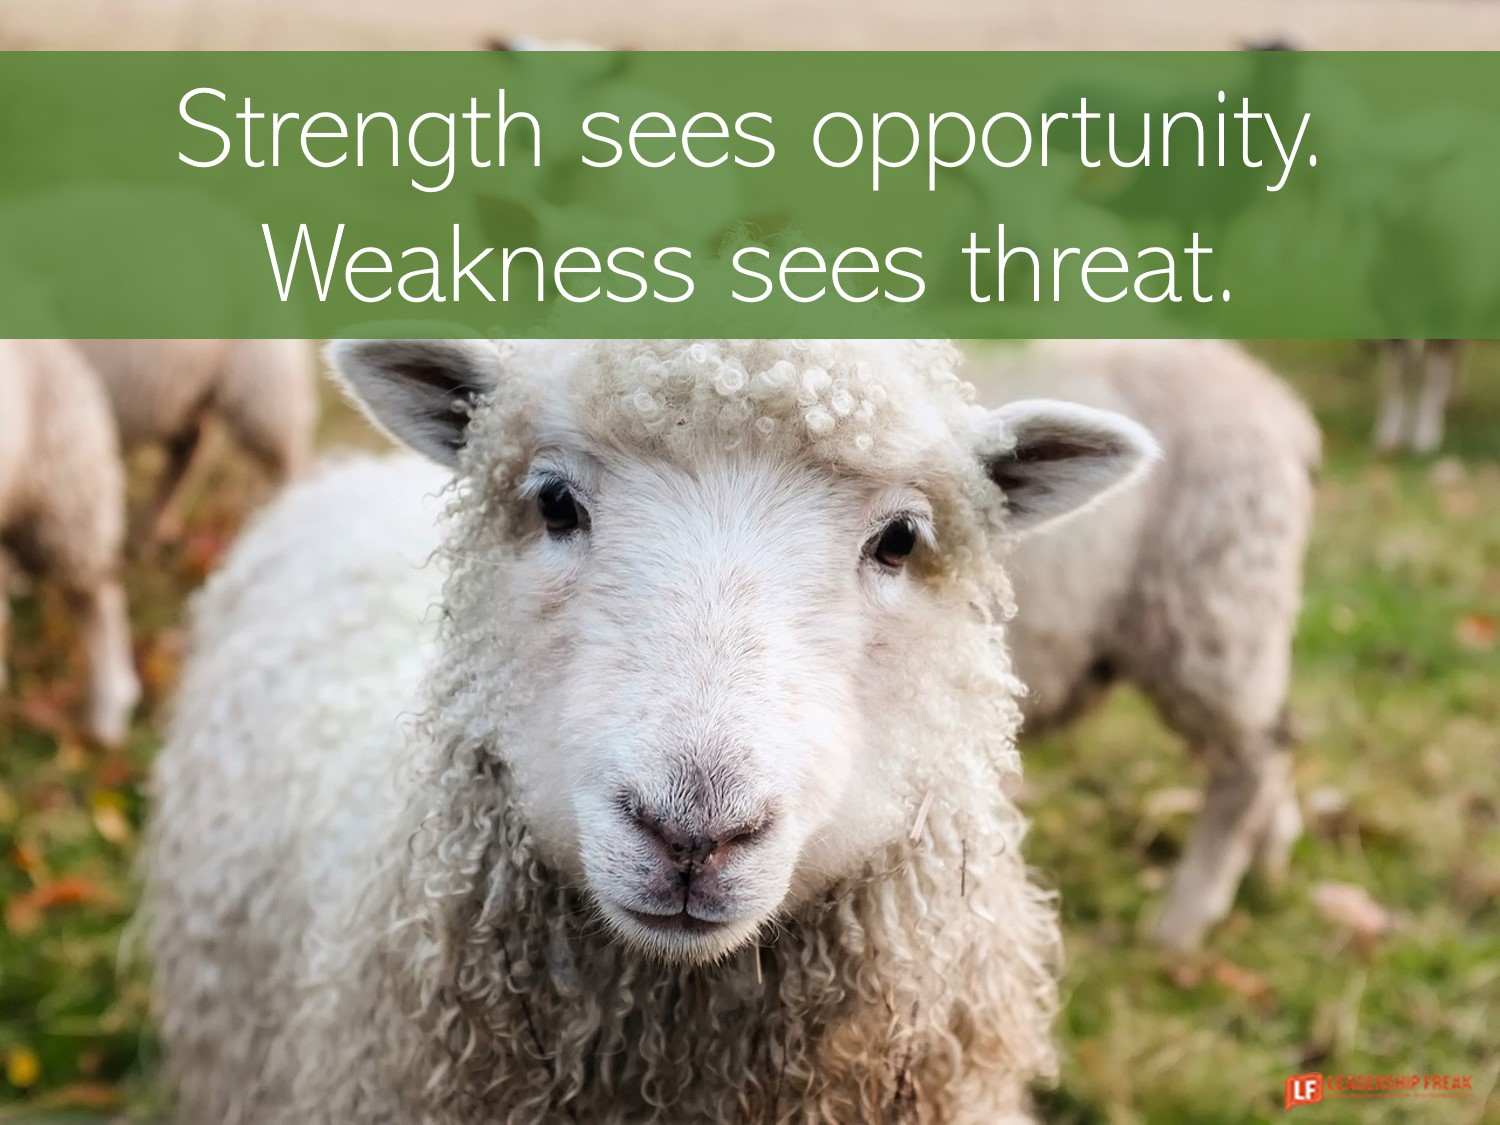 Sheep  Strength sees opportunity. Weakness sees threat.